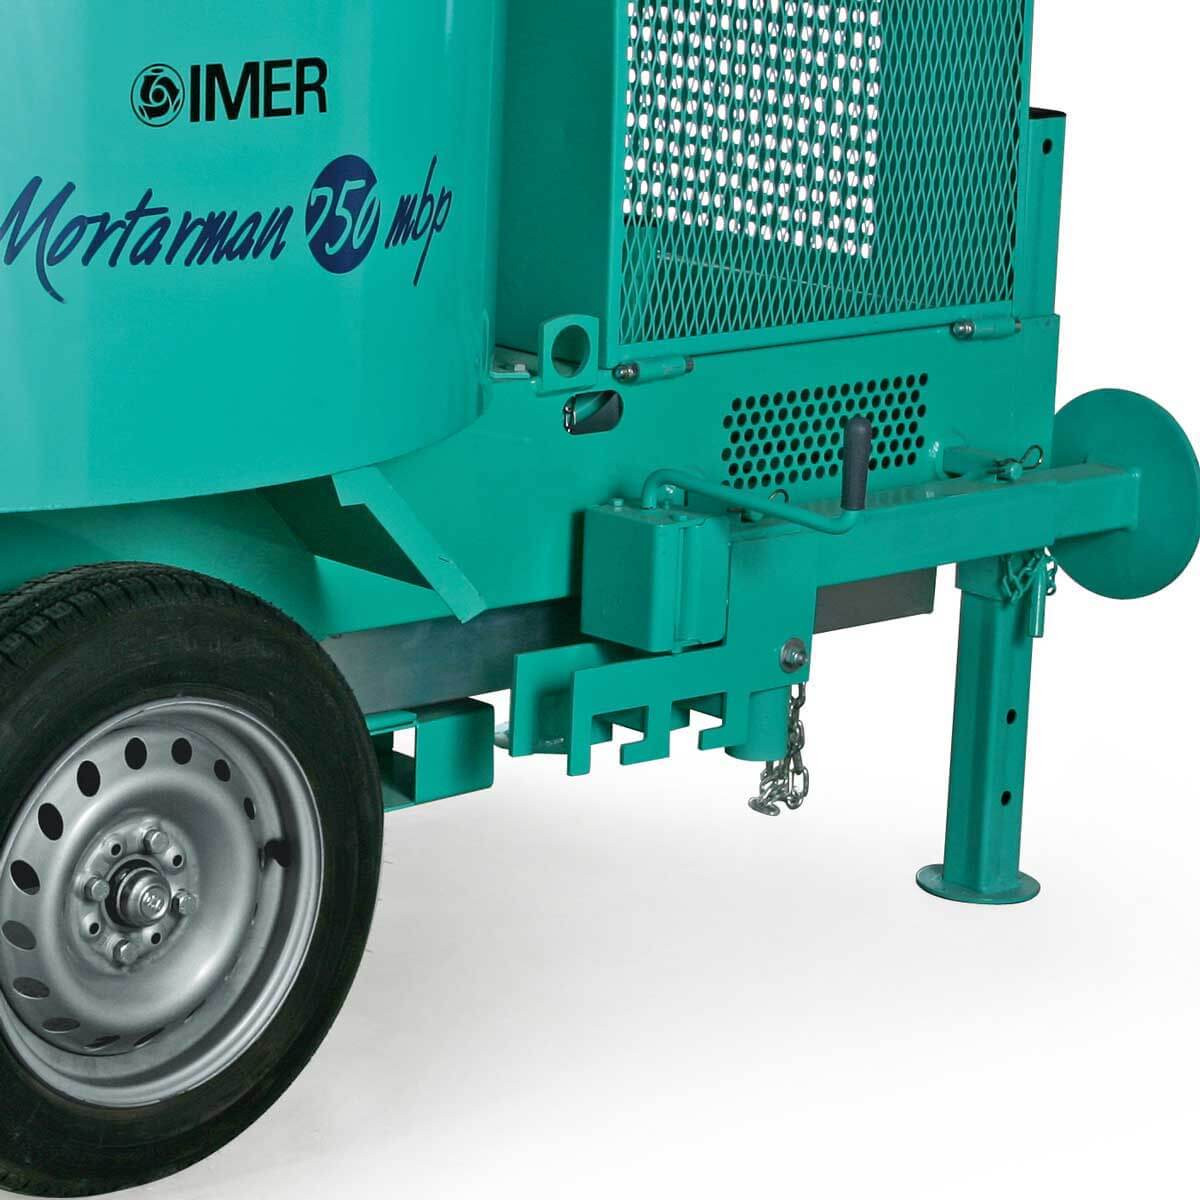 Imer Mortarman front outriggers